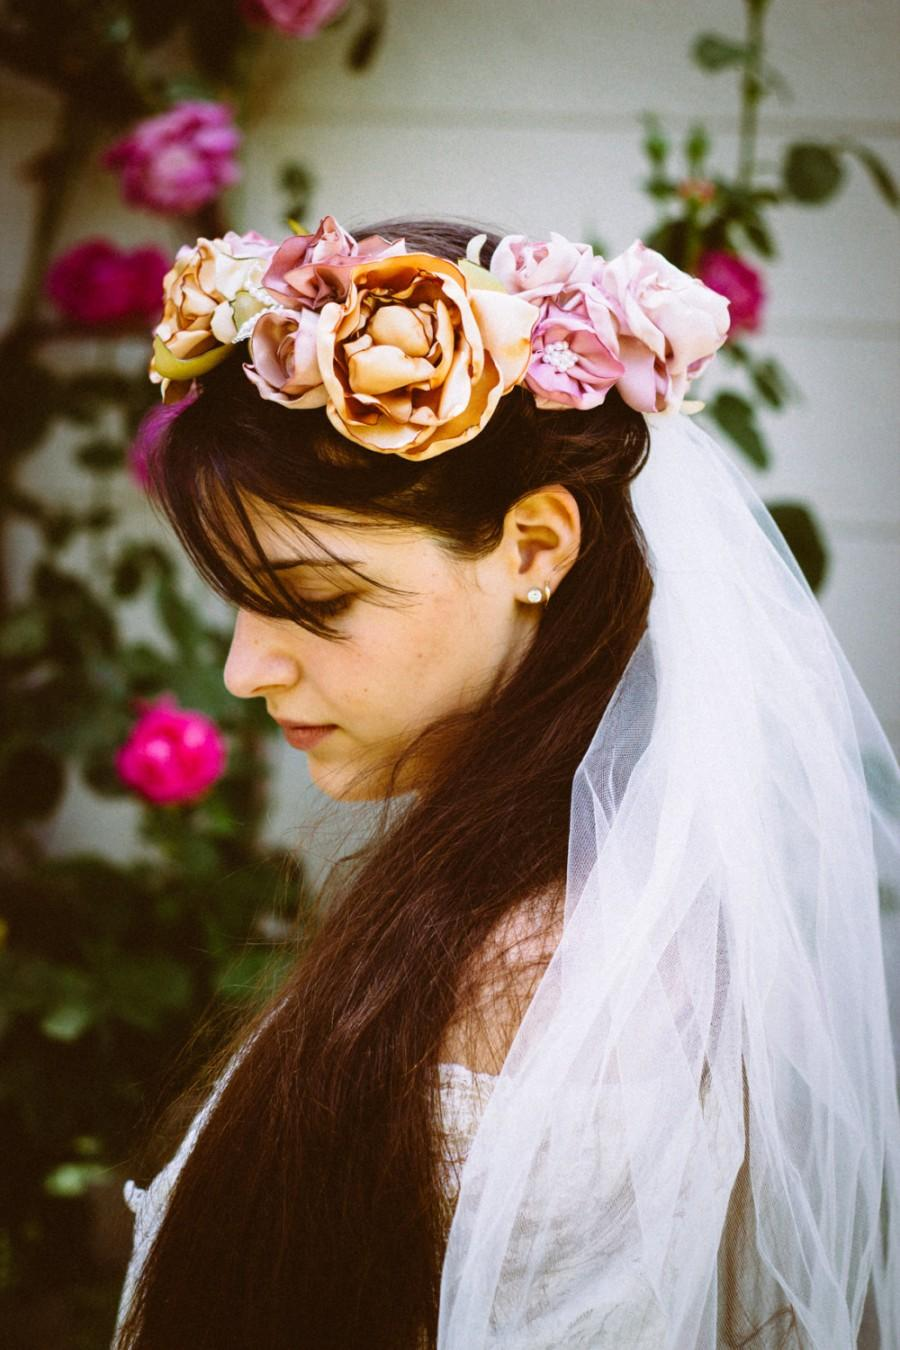 Bridal veil bridal flower crown bridal crown bridal halorose bridal veil bridal flower crown bridal crown bridal halorose flower crownbridal hair piece flower girl crown boho veilwoodland veil izmirmasajfo